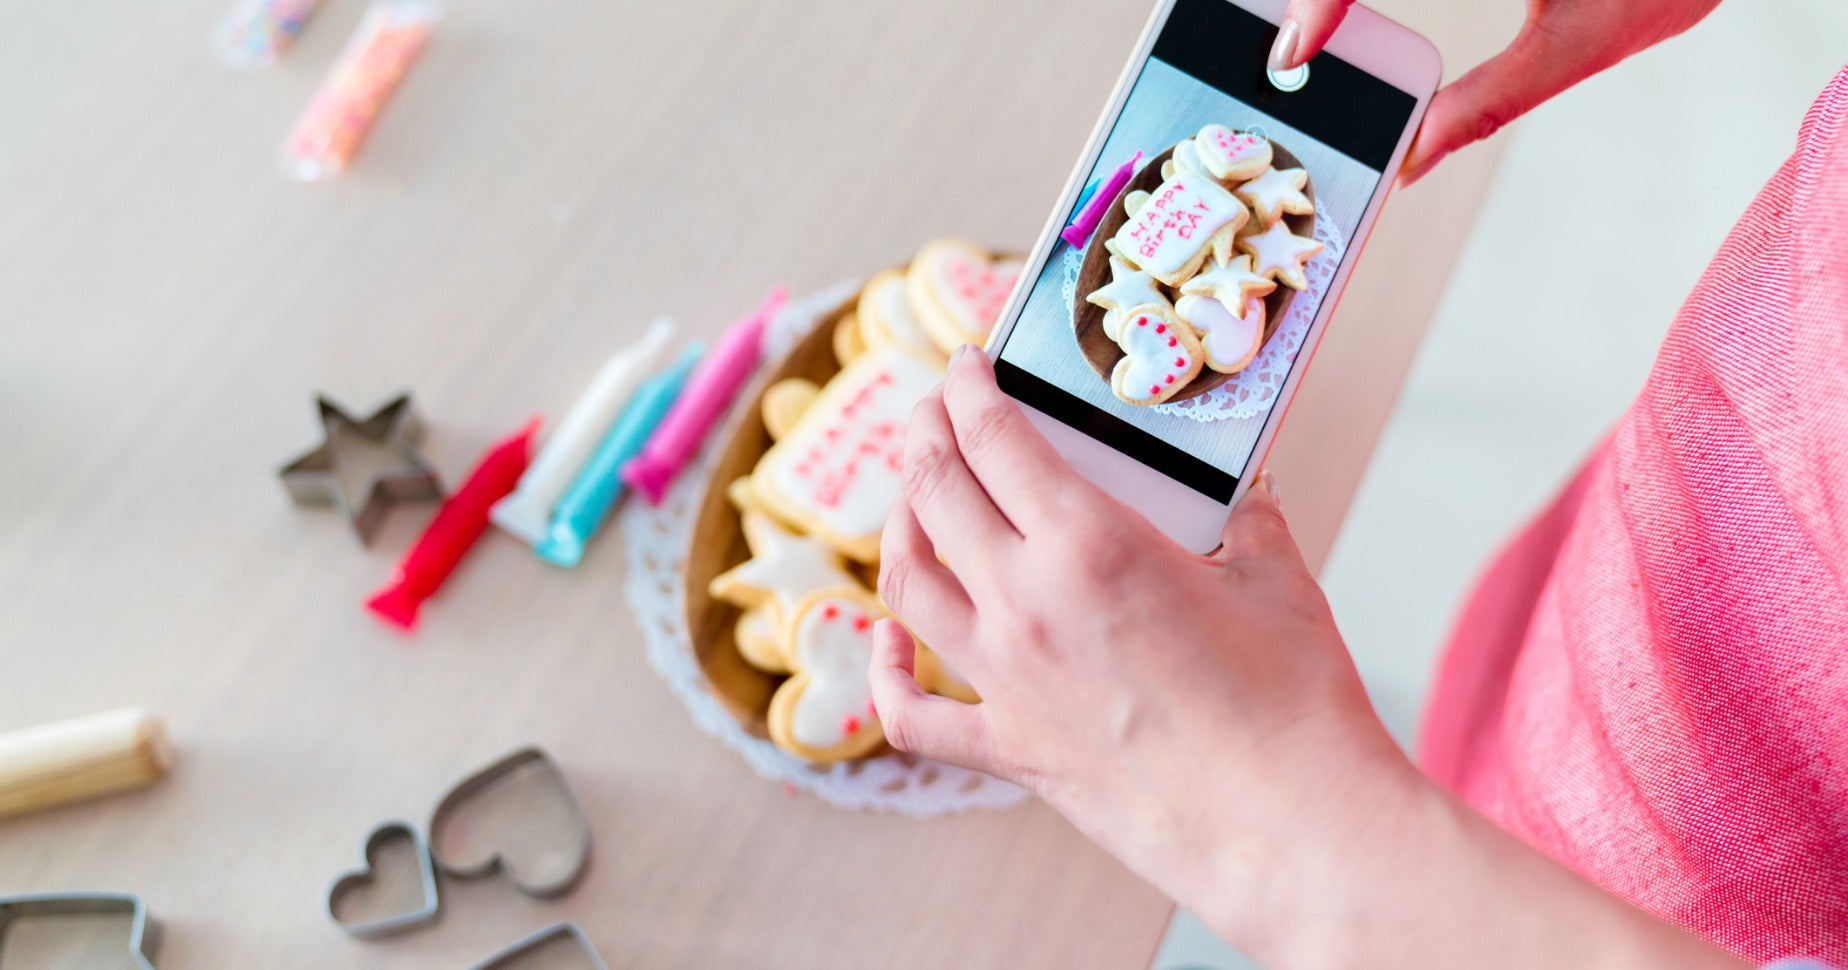 Woman taking product photos with smartphone